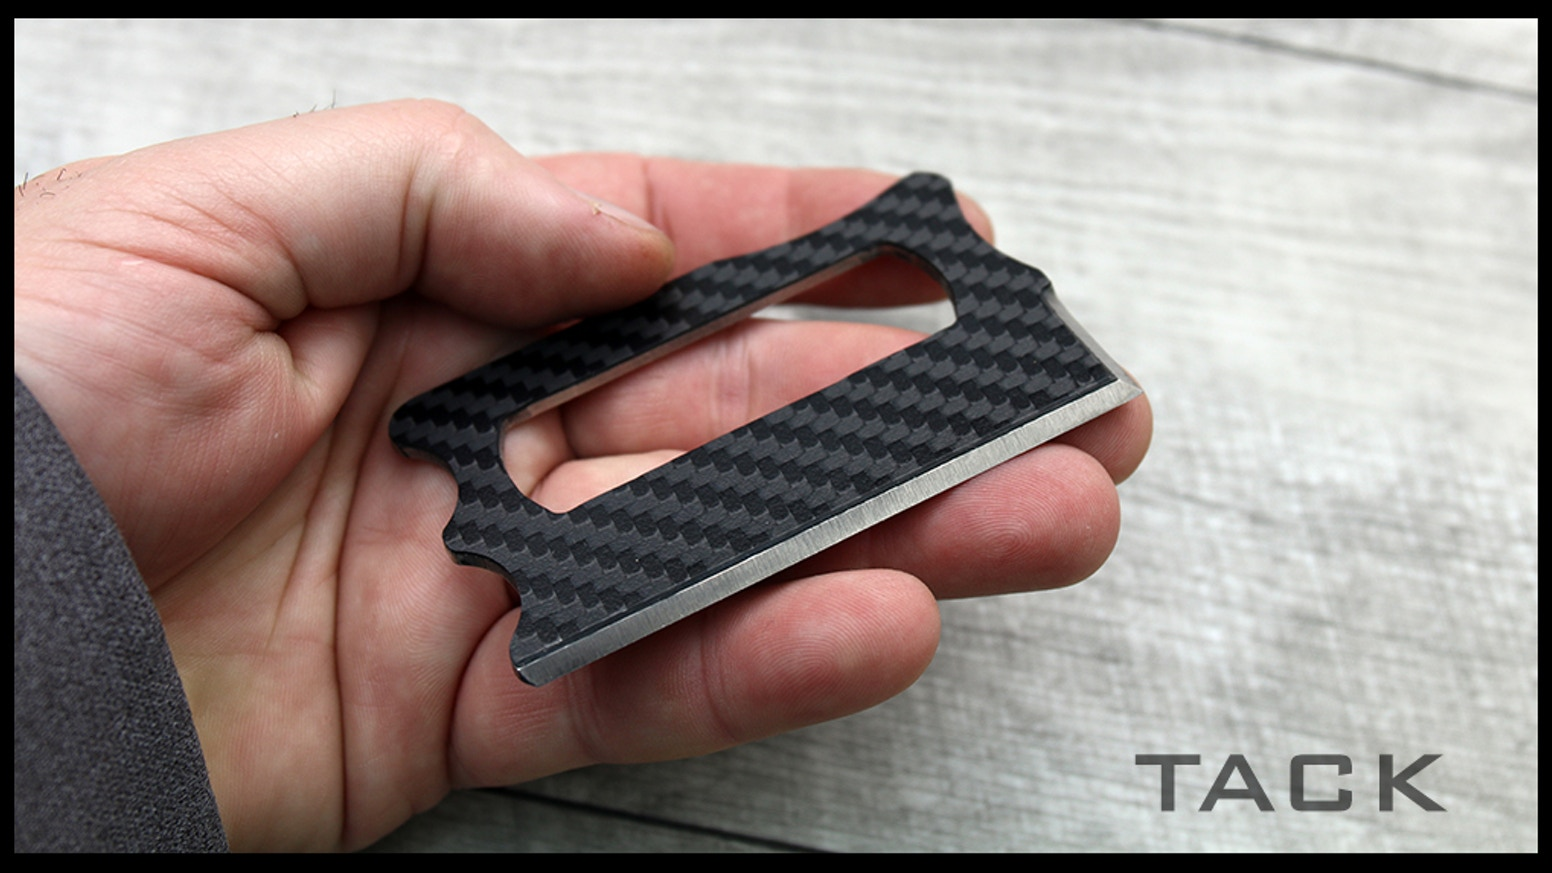 If you've missed out on our TACK wallet knife campaign, you may still pre-order one by clicking on the link below: